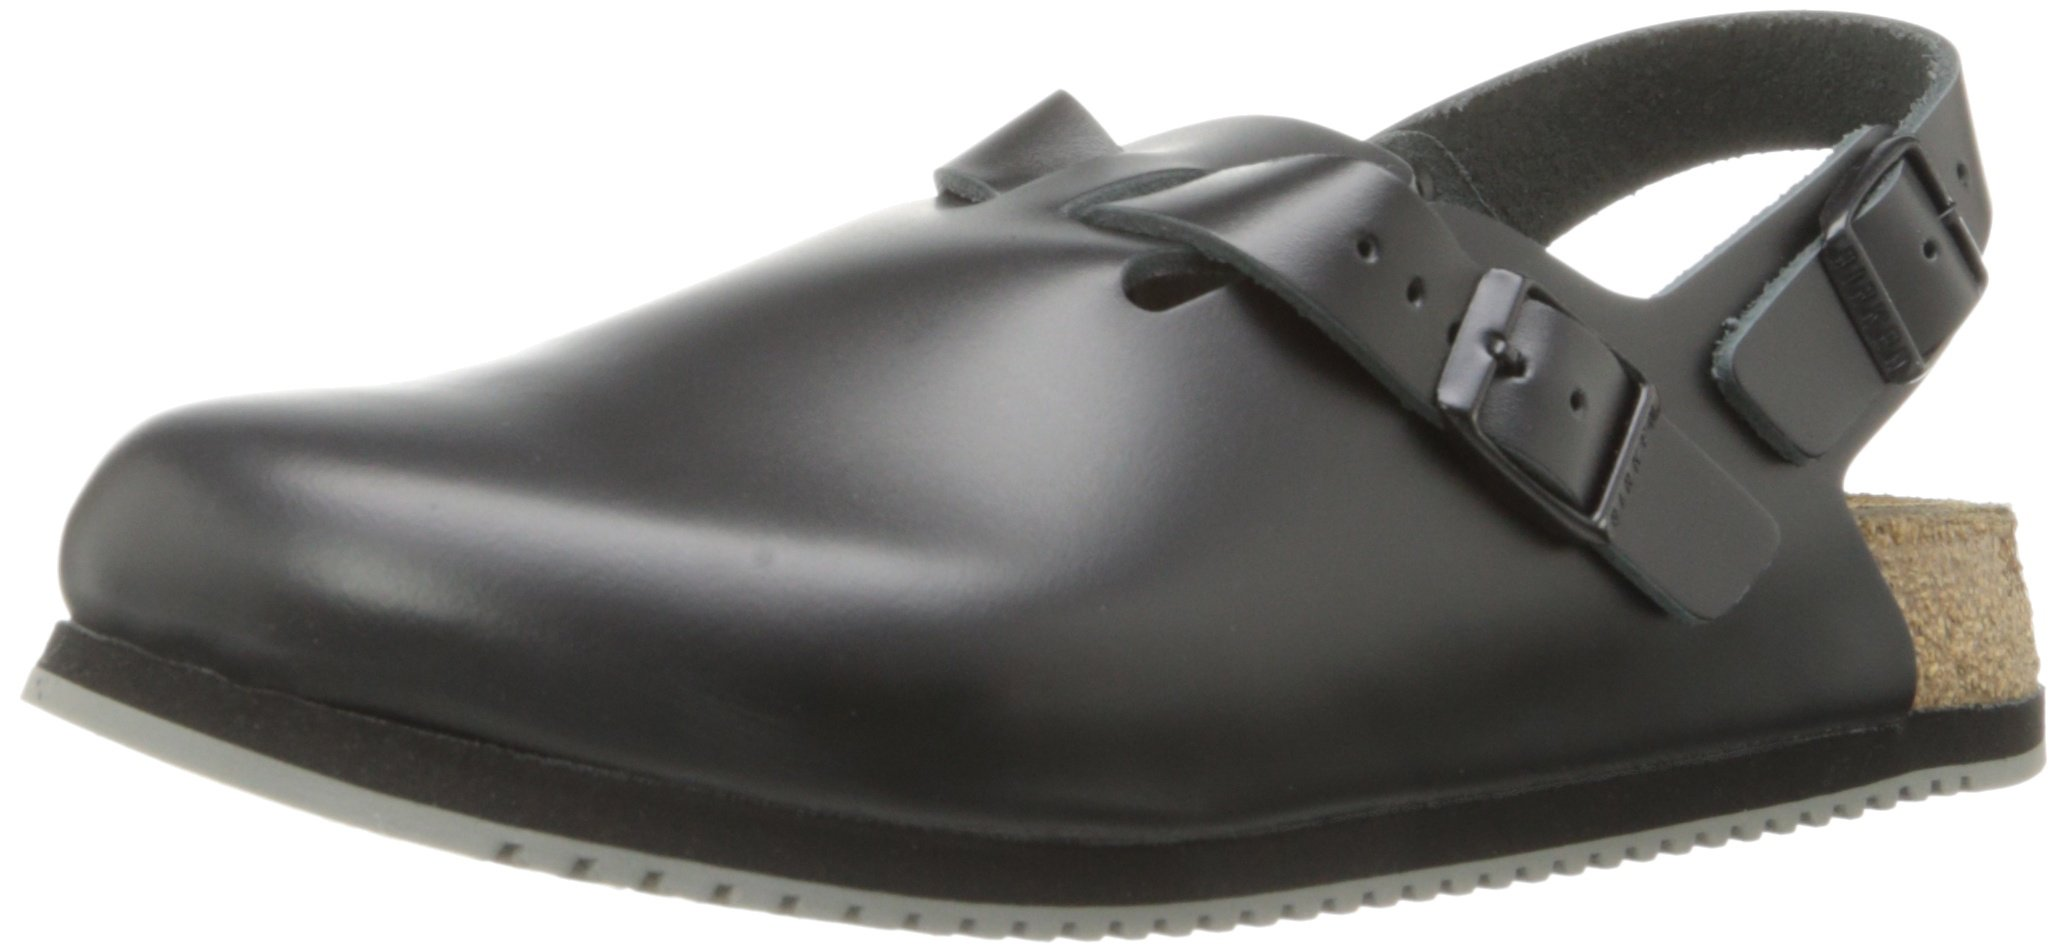 Birkenstock Unisex Professional Tokyo Super Grip Leather Slip Resistant Work Shoe,Black, 40 N EU/7-7.5 N US Men/ 9-9.5 N US Women